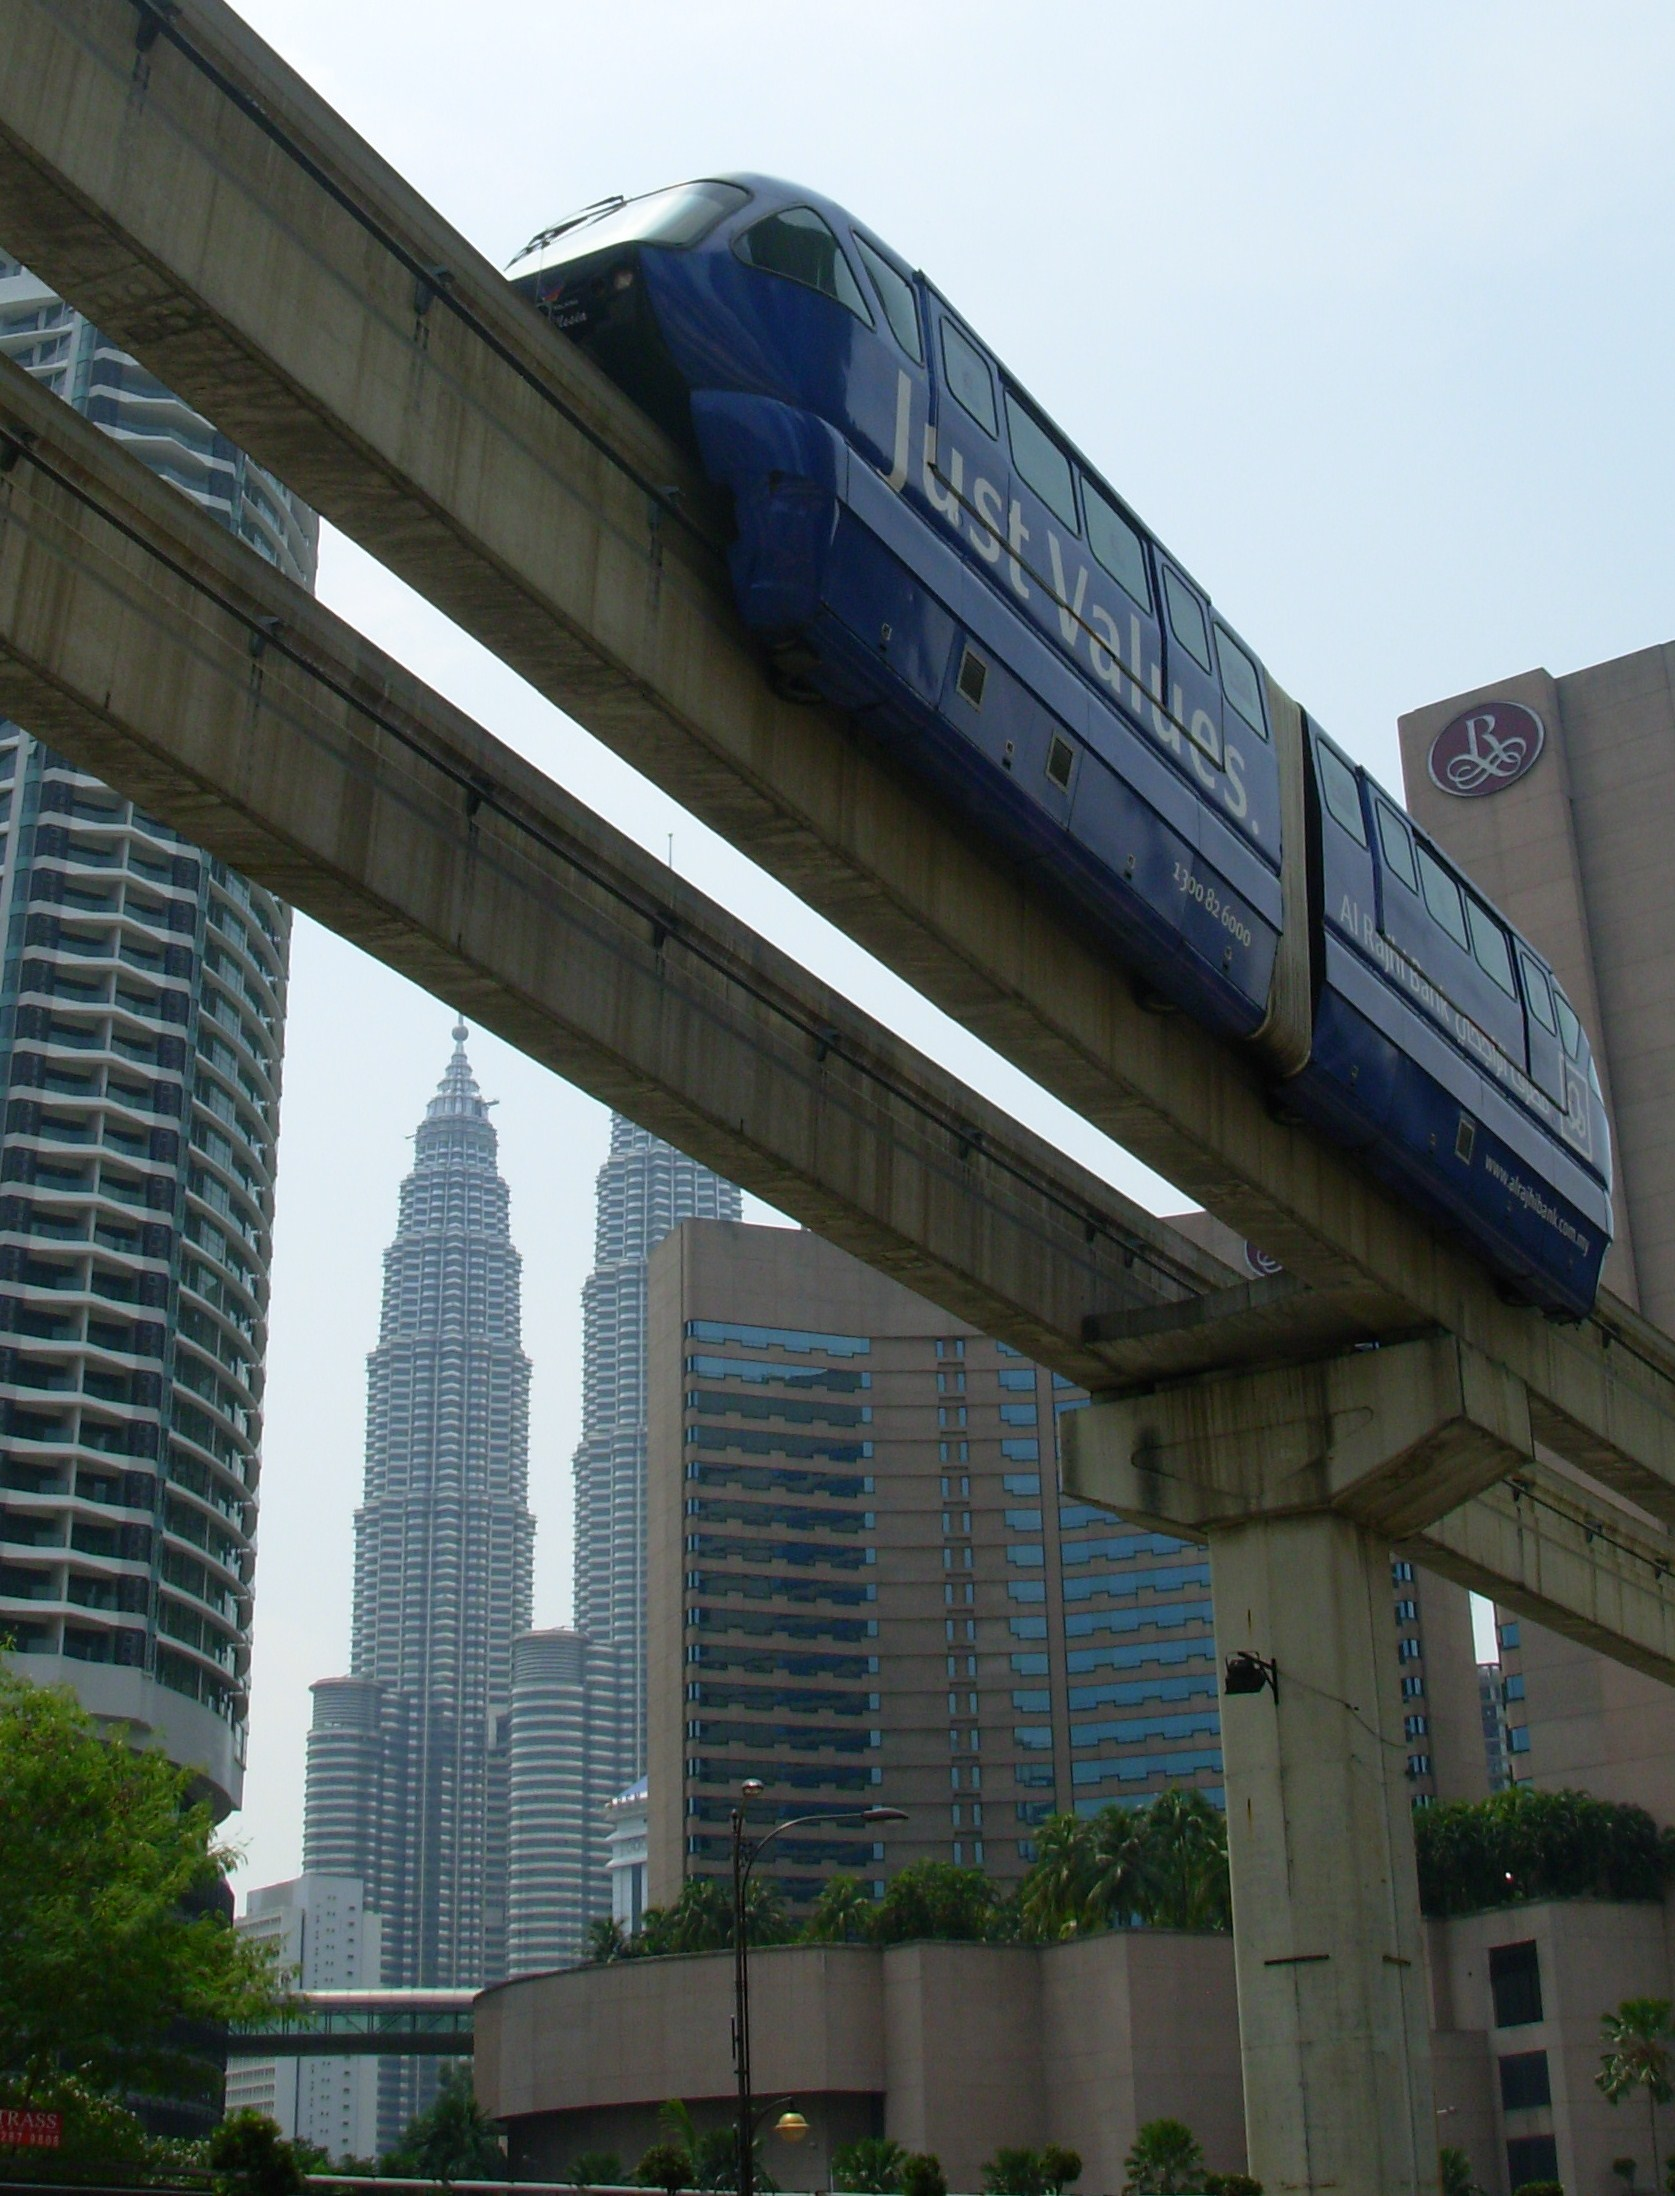 Petronas Towers and KL monorail